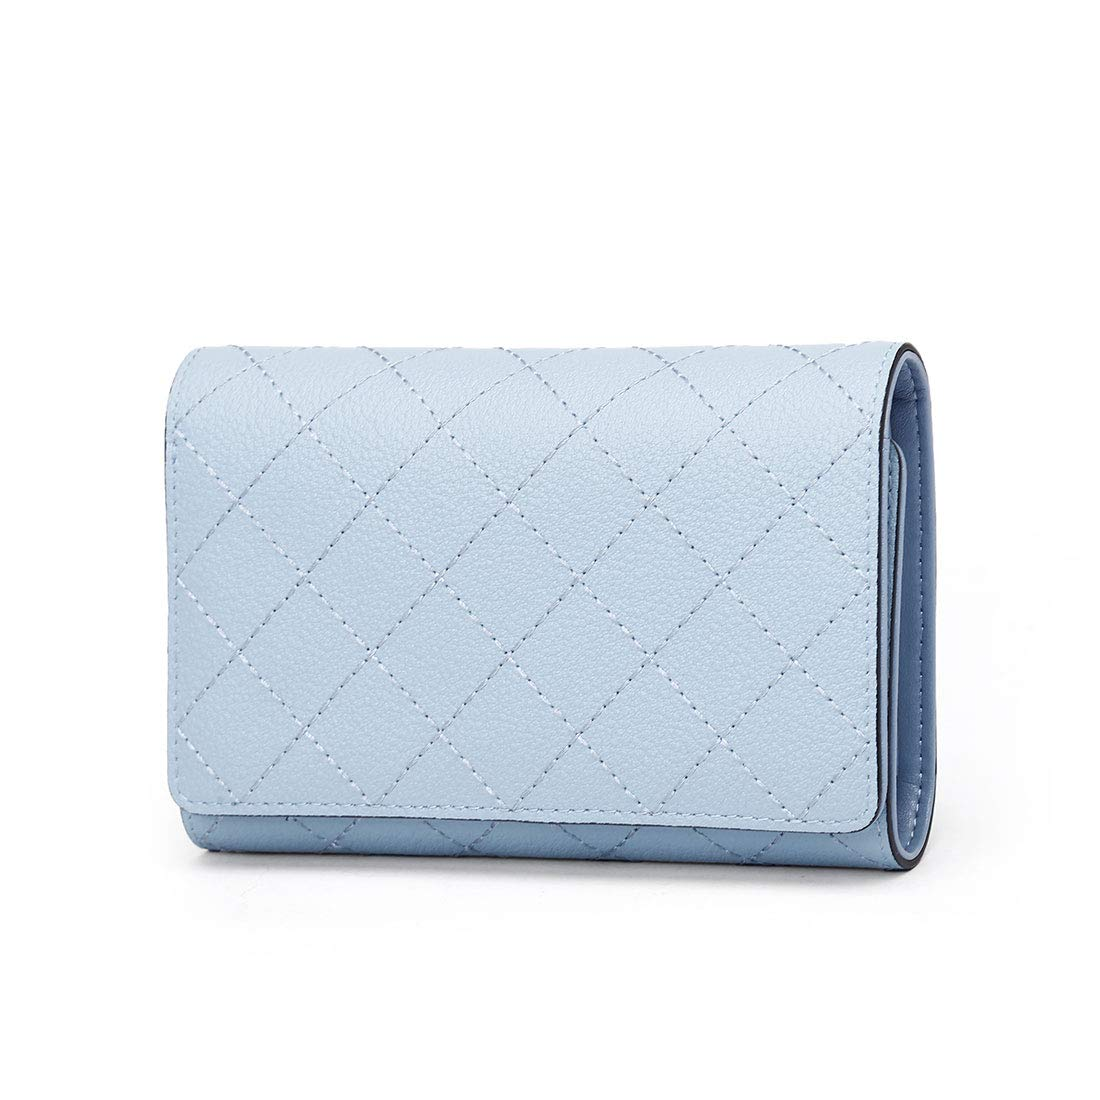 Women Genuine Leather Wallets Trifold Small Card Holder Clutch Purse with Zipper Pocket Blue